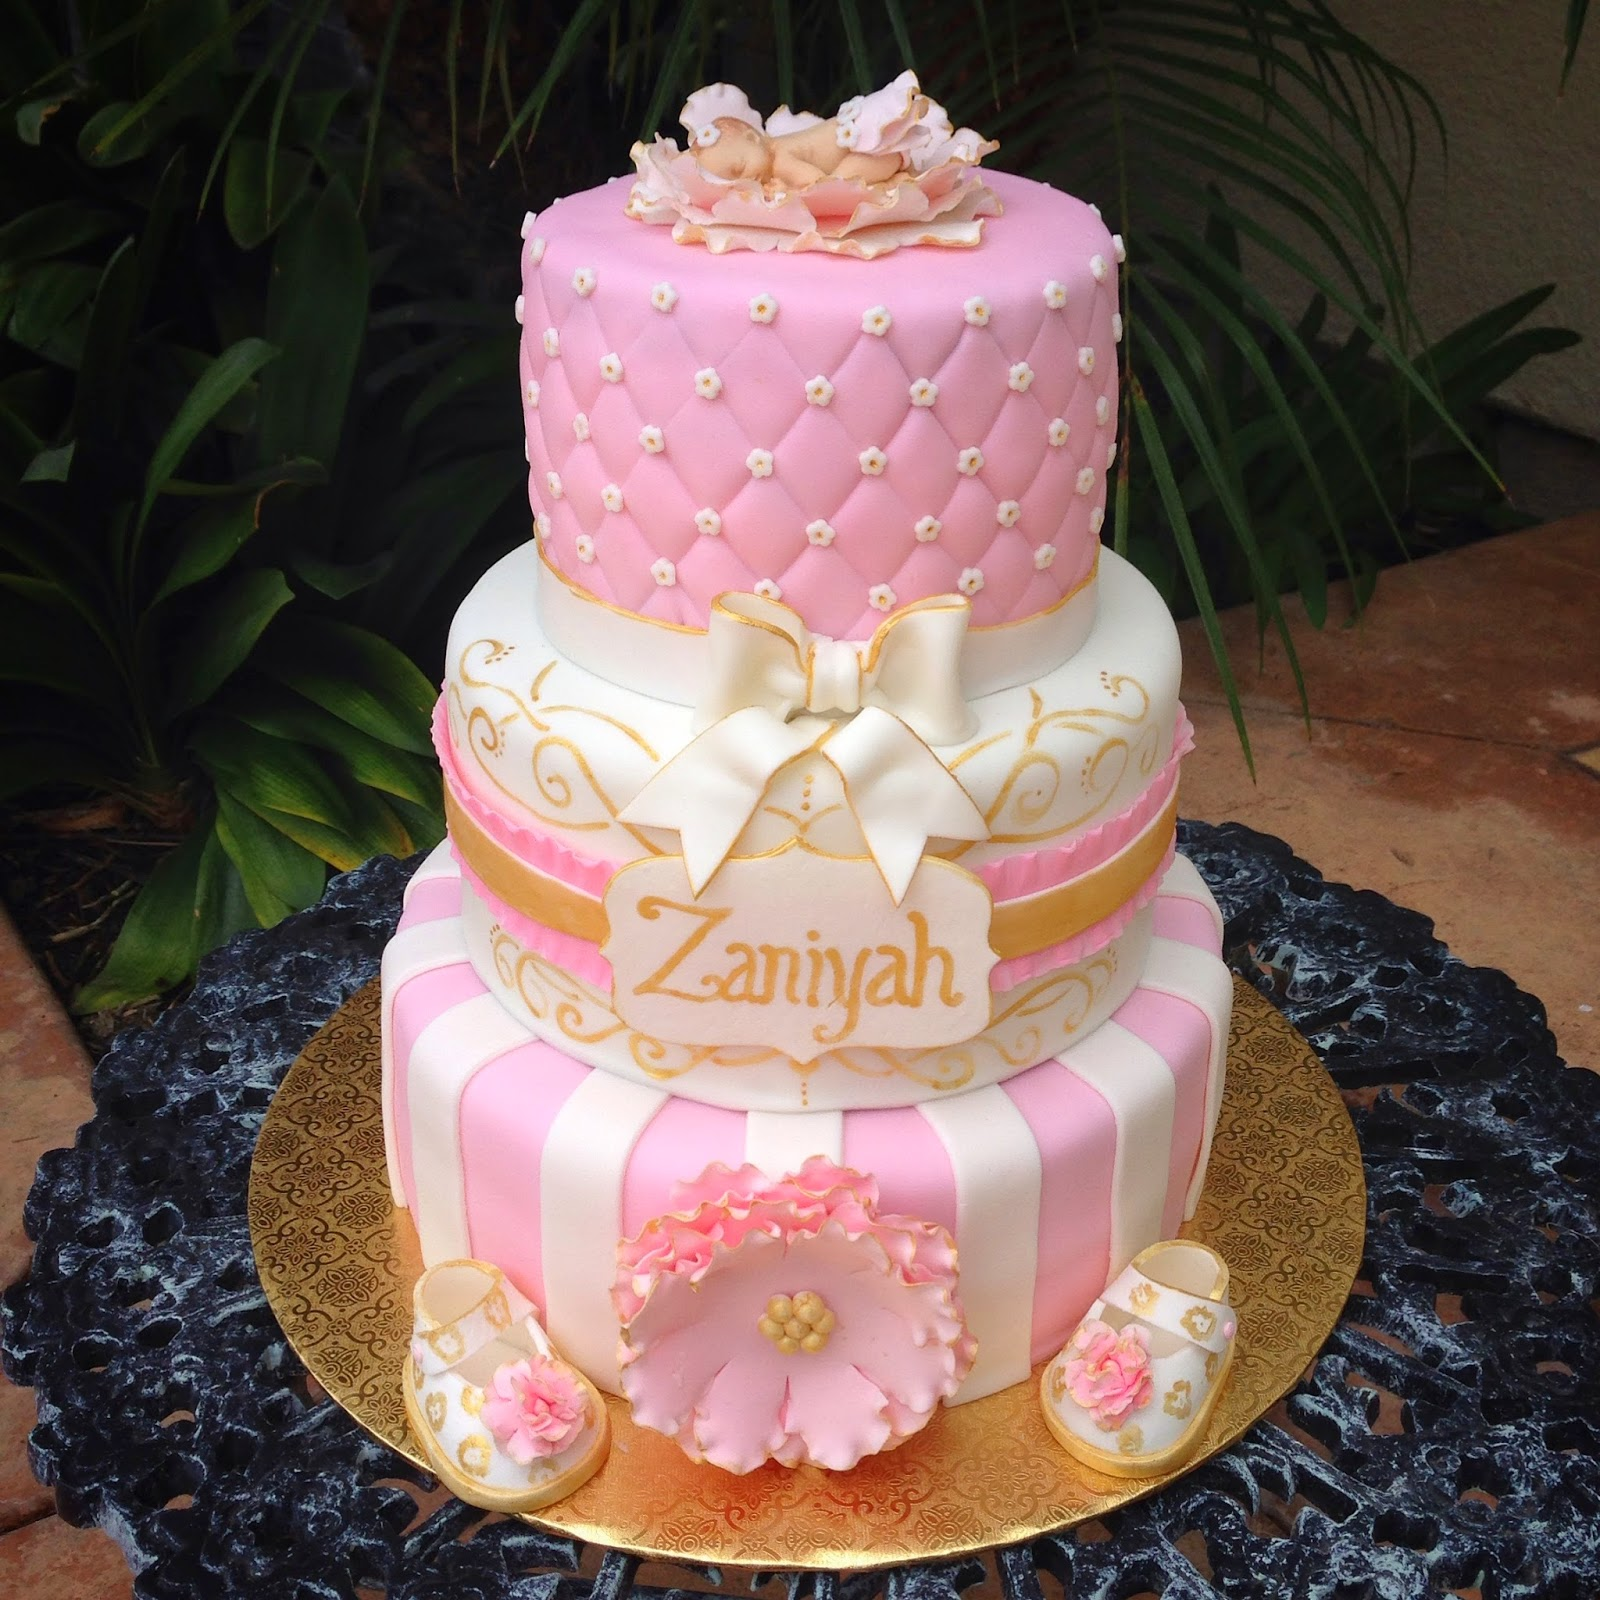 Kaylynn Cakes Baby Shower Cakes